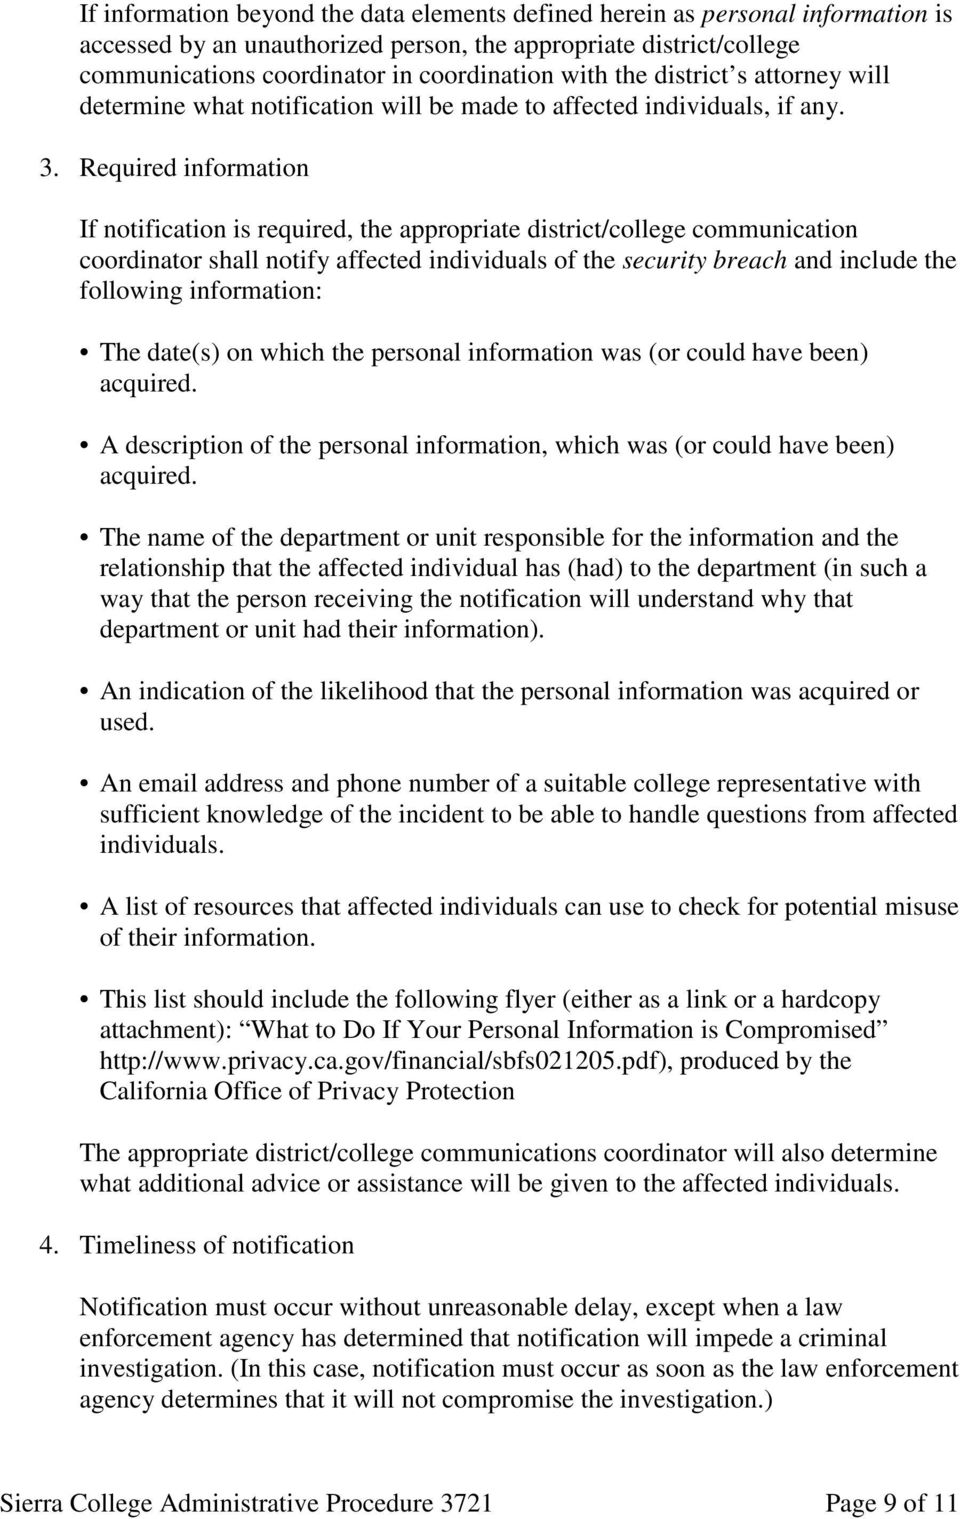 Required information If notification is required, the appropriate district/college communication coordinator shall notify affected individuals of the security breach and include the following